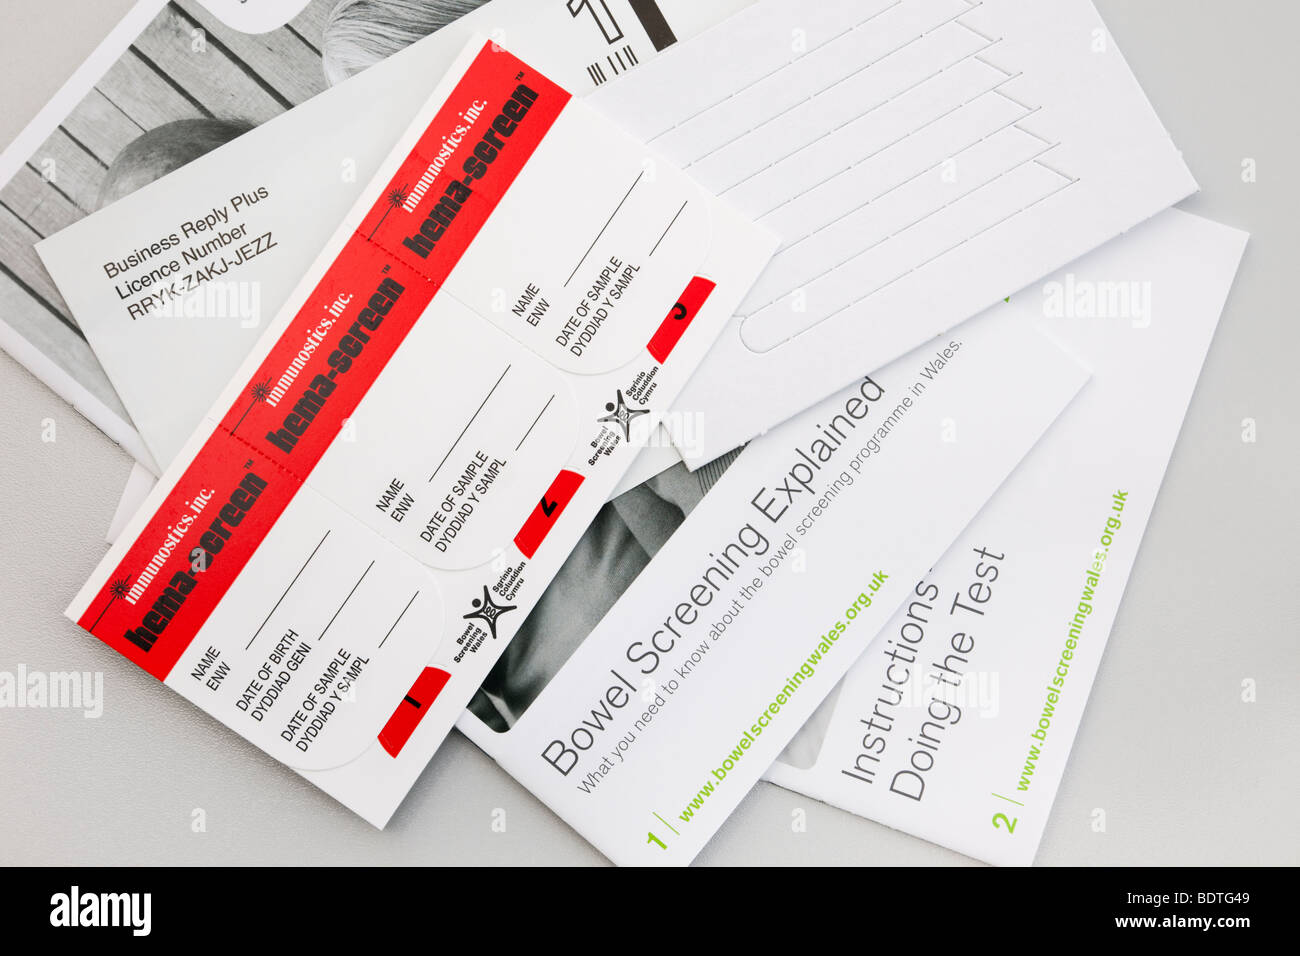 UK Bowel cancer screening kit from National Health Service Wales. - Stock Image